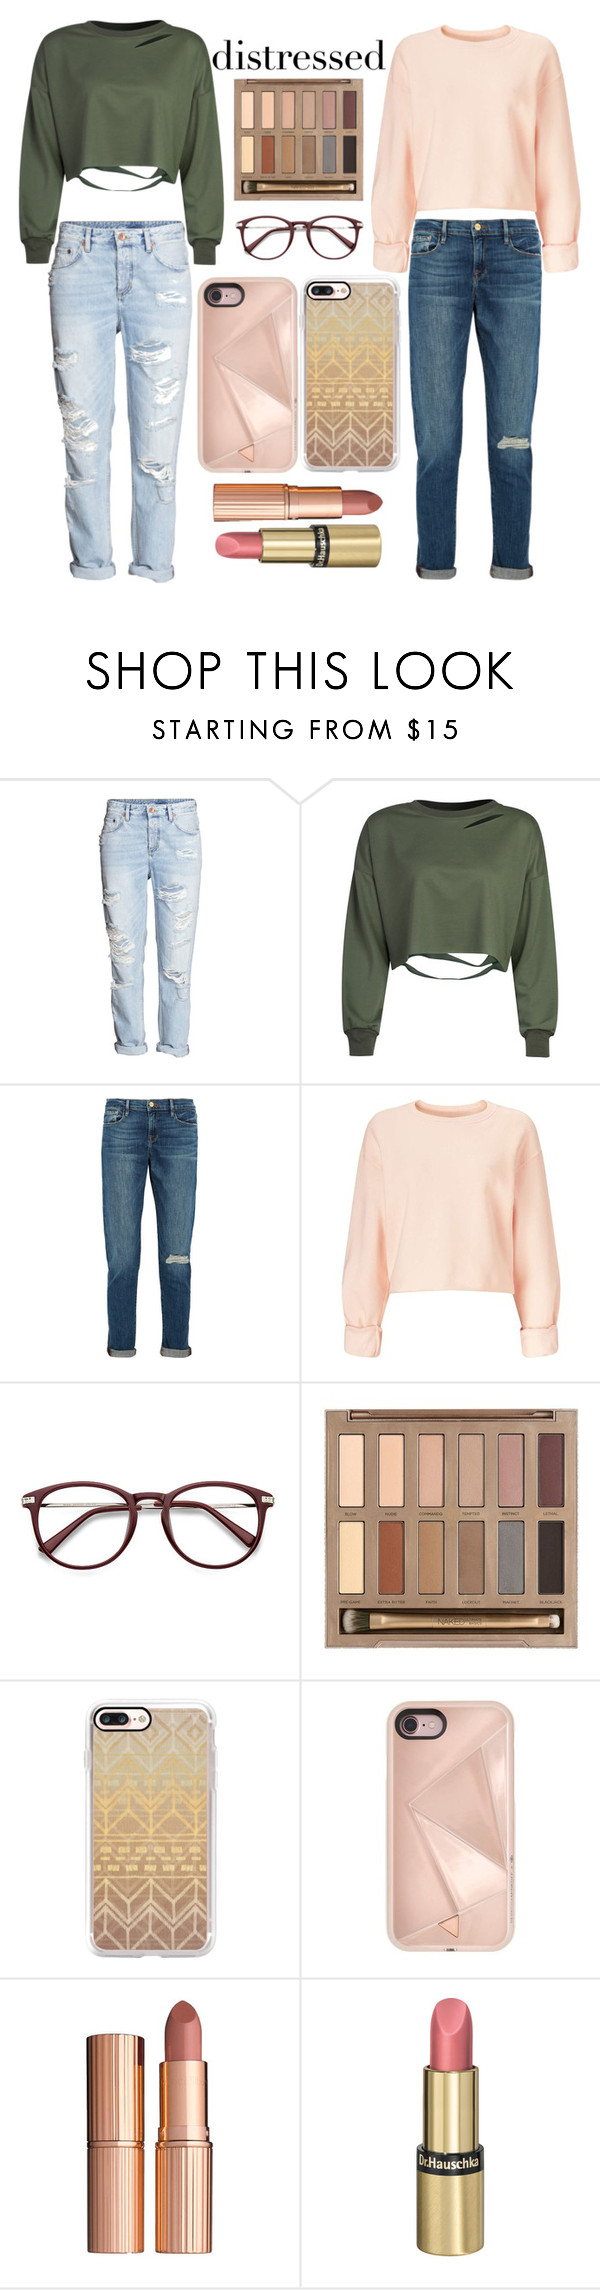 """""""Distressed Denim"""" by nettie56 ❤ liked on Polyvore featuring WithChic, Frame, Miss Selfridge, Urban Decay, Casetify, Rebecca Minkoff, Charlotte Tilbury and Dr.Hauschka"""